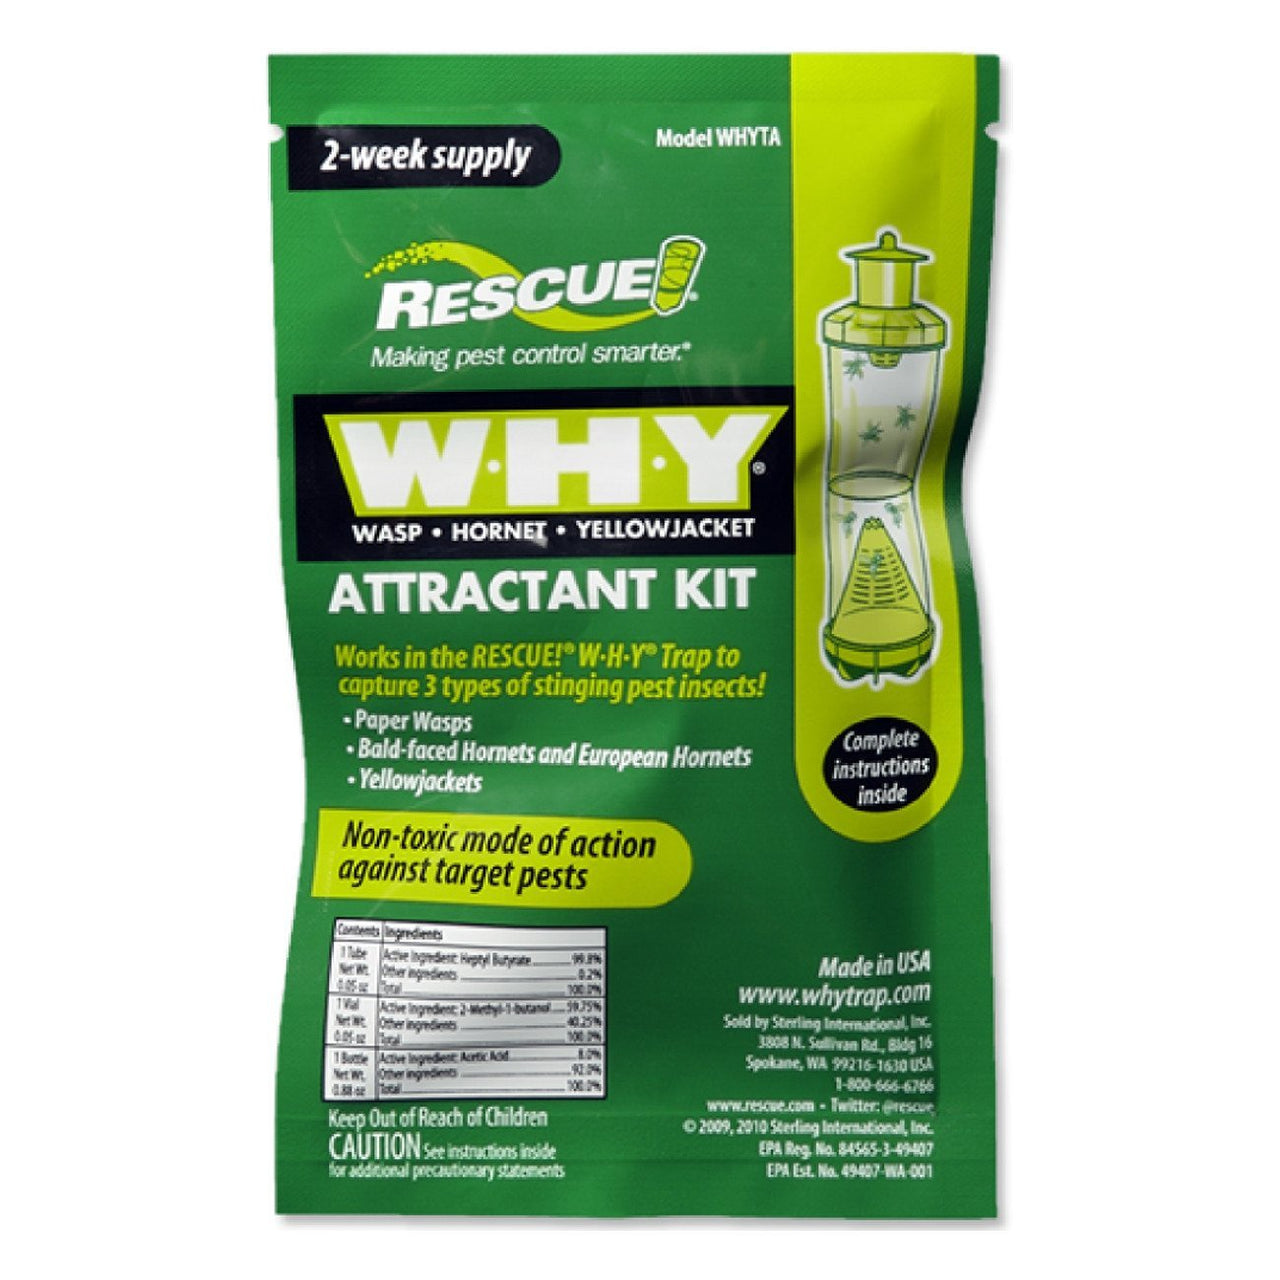 Rescue! Attractant For Reusable Yellowjacket Traps (36 Packs) - Pest Control Rescue! - Canada